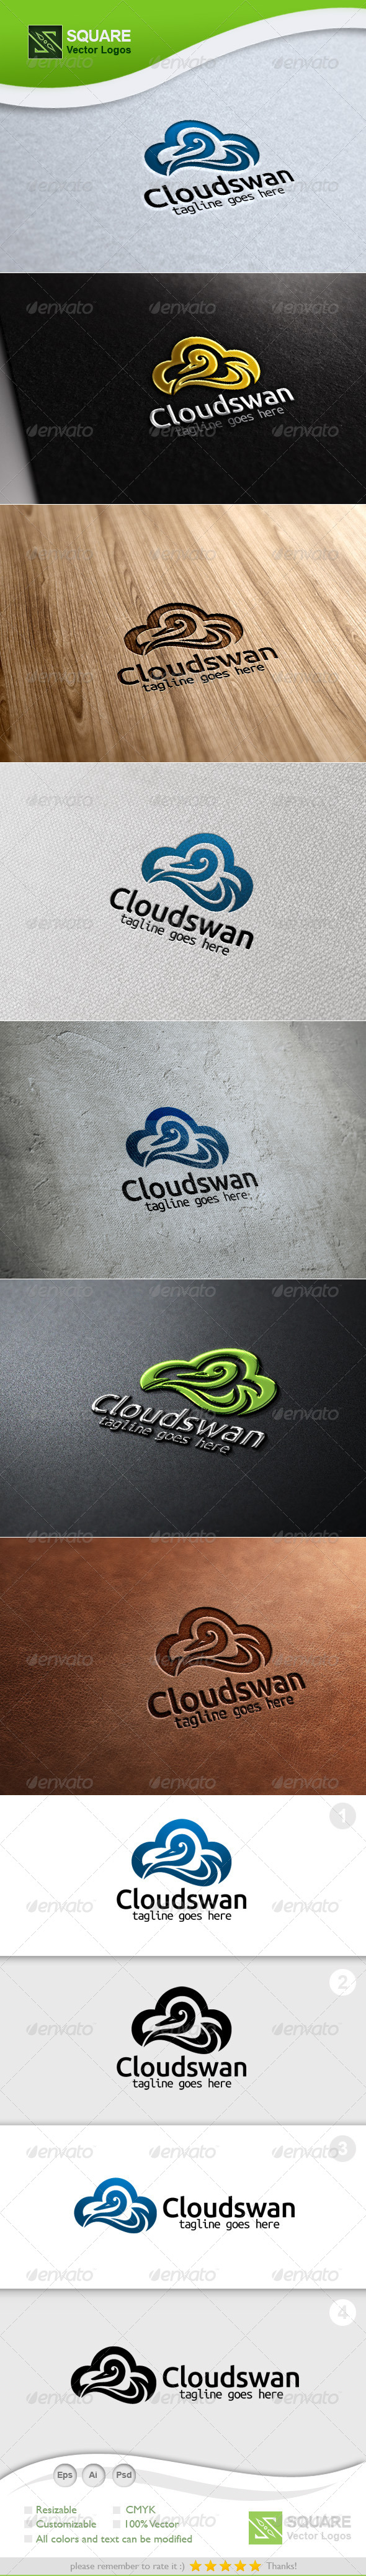 Cloud, Swan Vector Logo Template - Animals Logo Templates